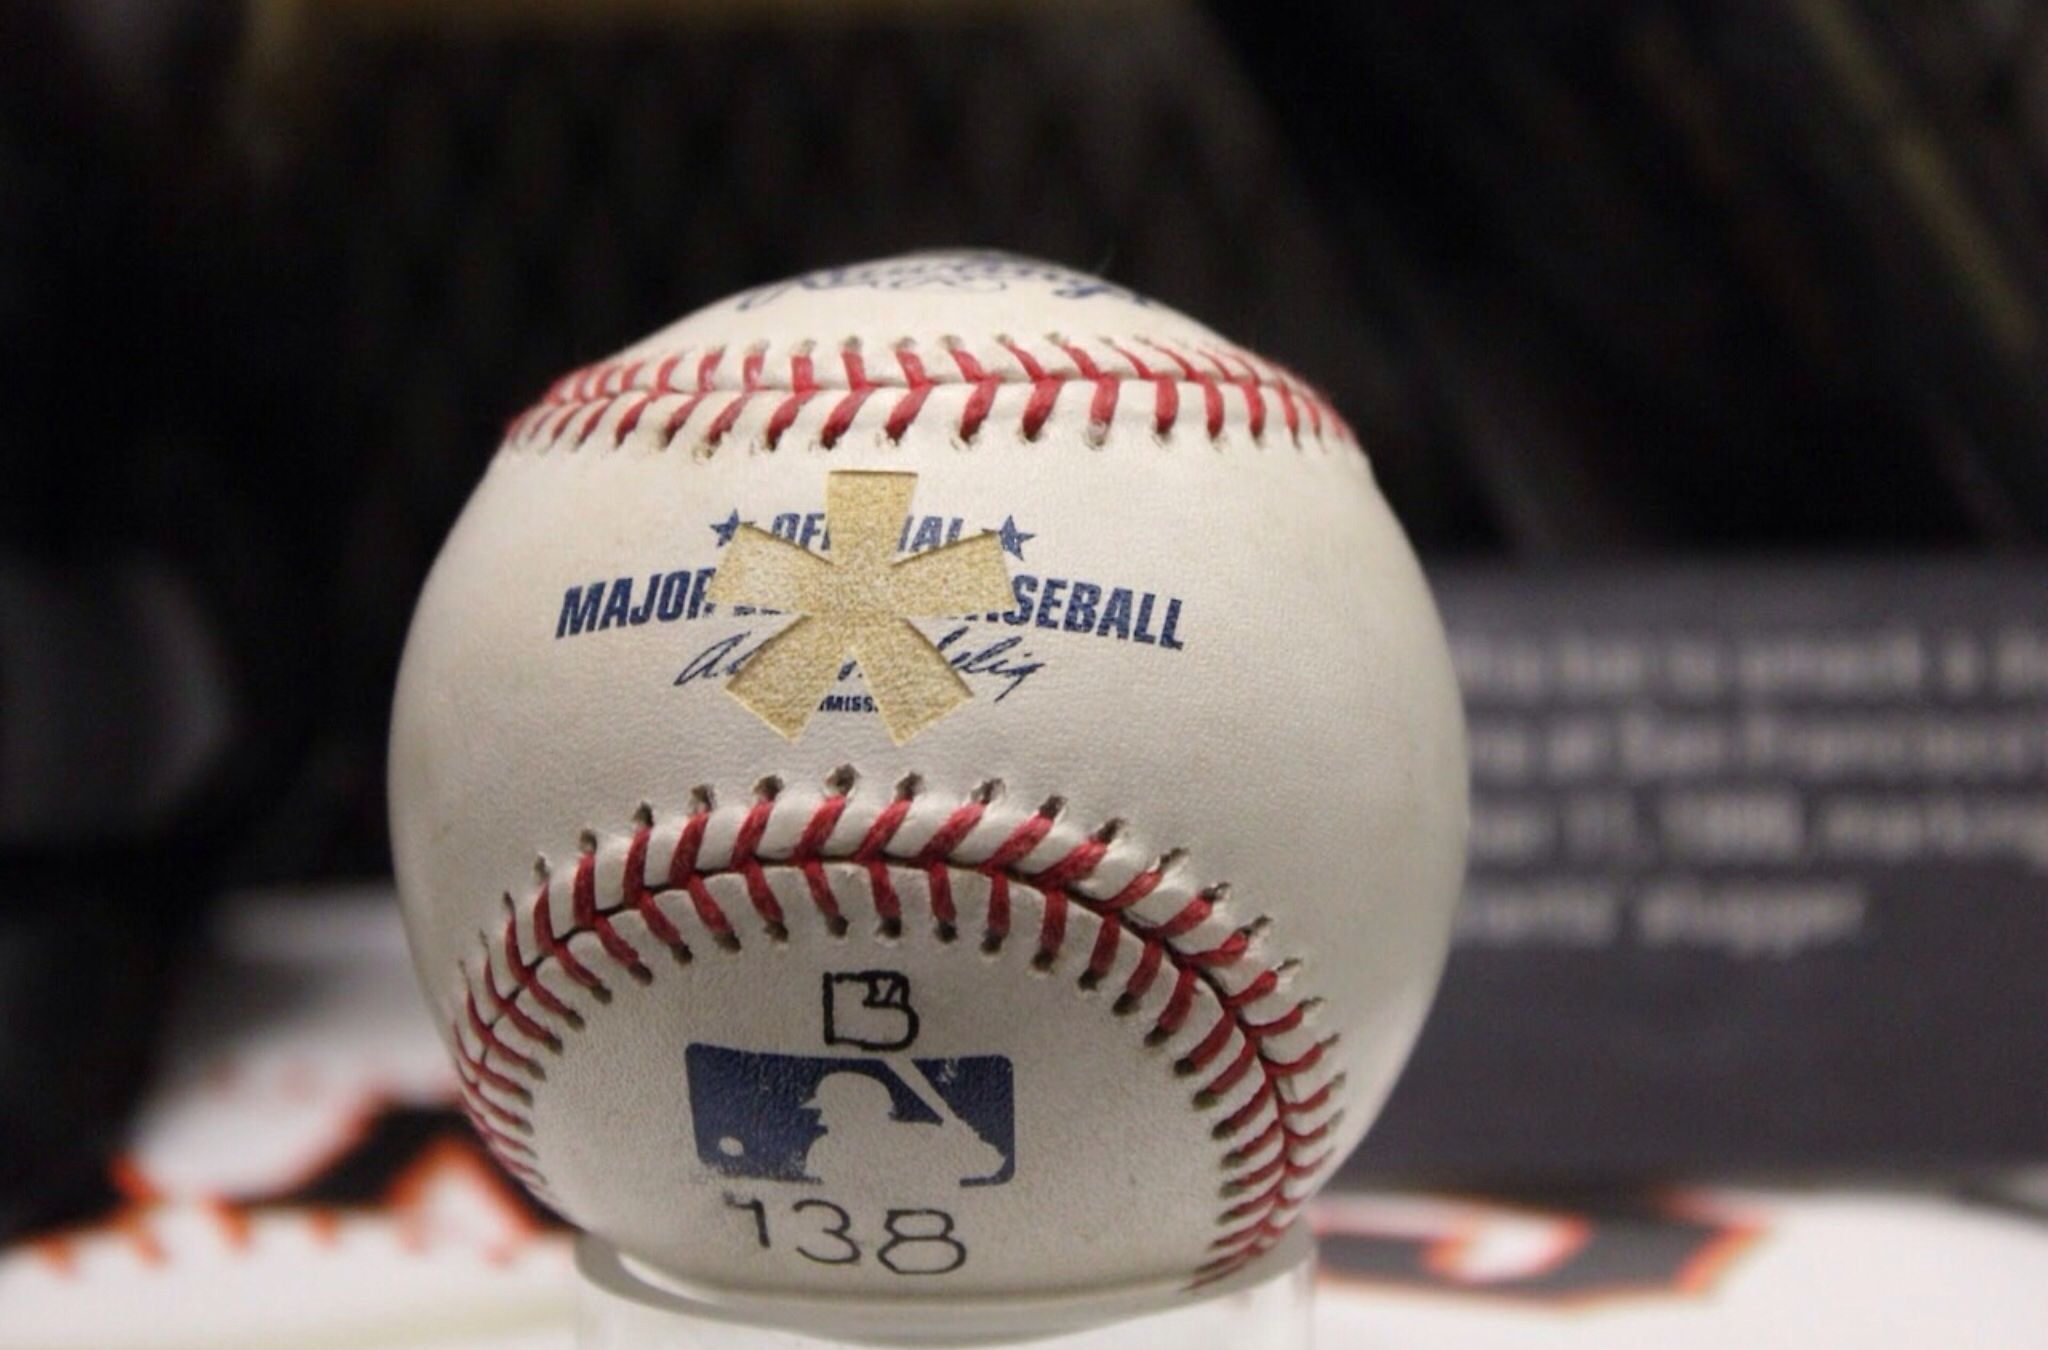 Barry Bonds asterisk home run ball